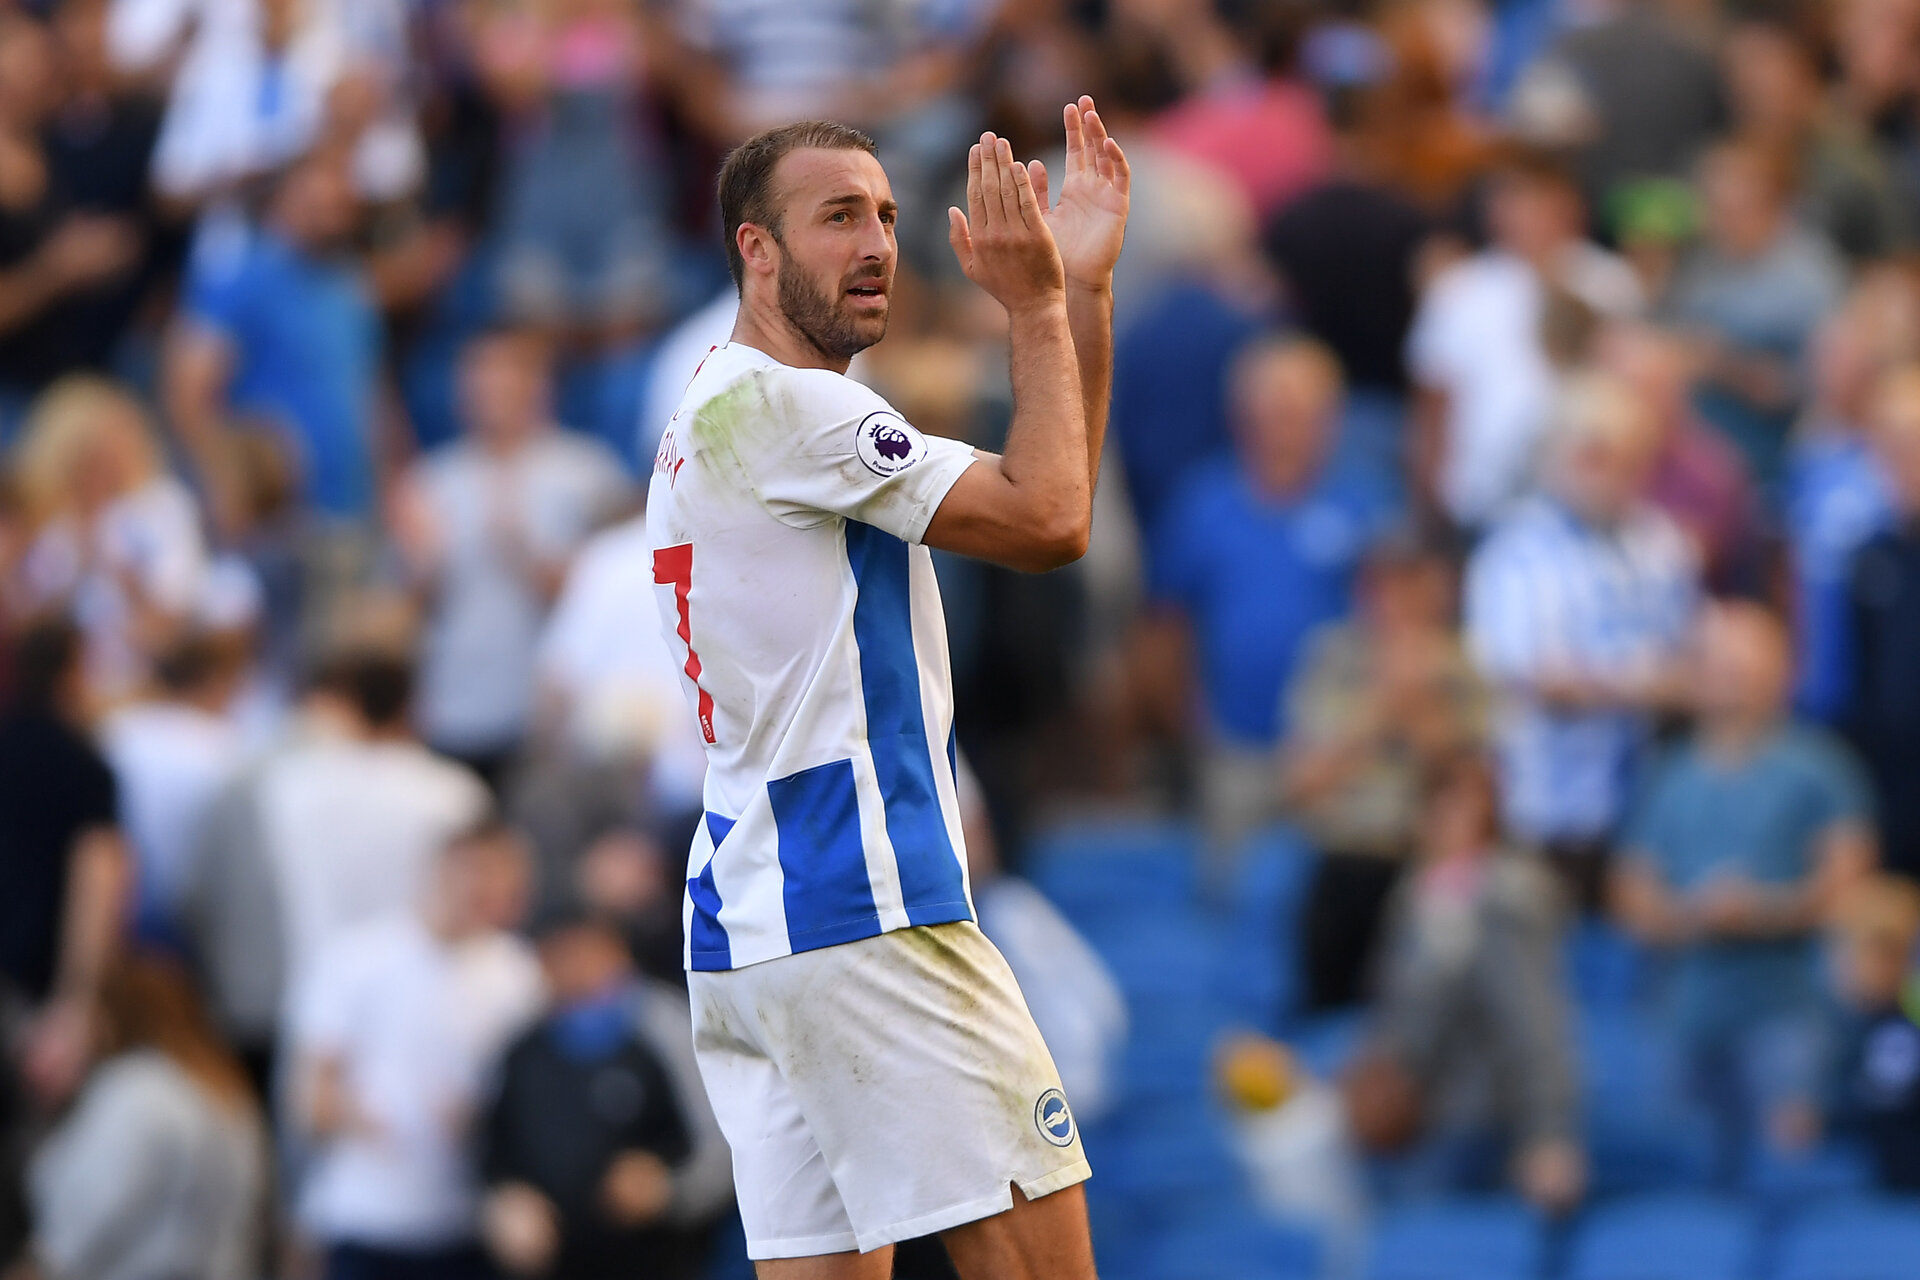 BRIGHTON, ENGLAND - SEPTEMBER 01:  Glenn Murray of Brighton & Hove Albion applauds the fans at the end of the Premier League match between Brighton & Hove Albion and Fulham FC at American Express Community Stadium on September 1, 2018 in Brighton, United Kingdom.  (Photo by Mike Hewitt/Getty Images)